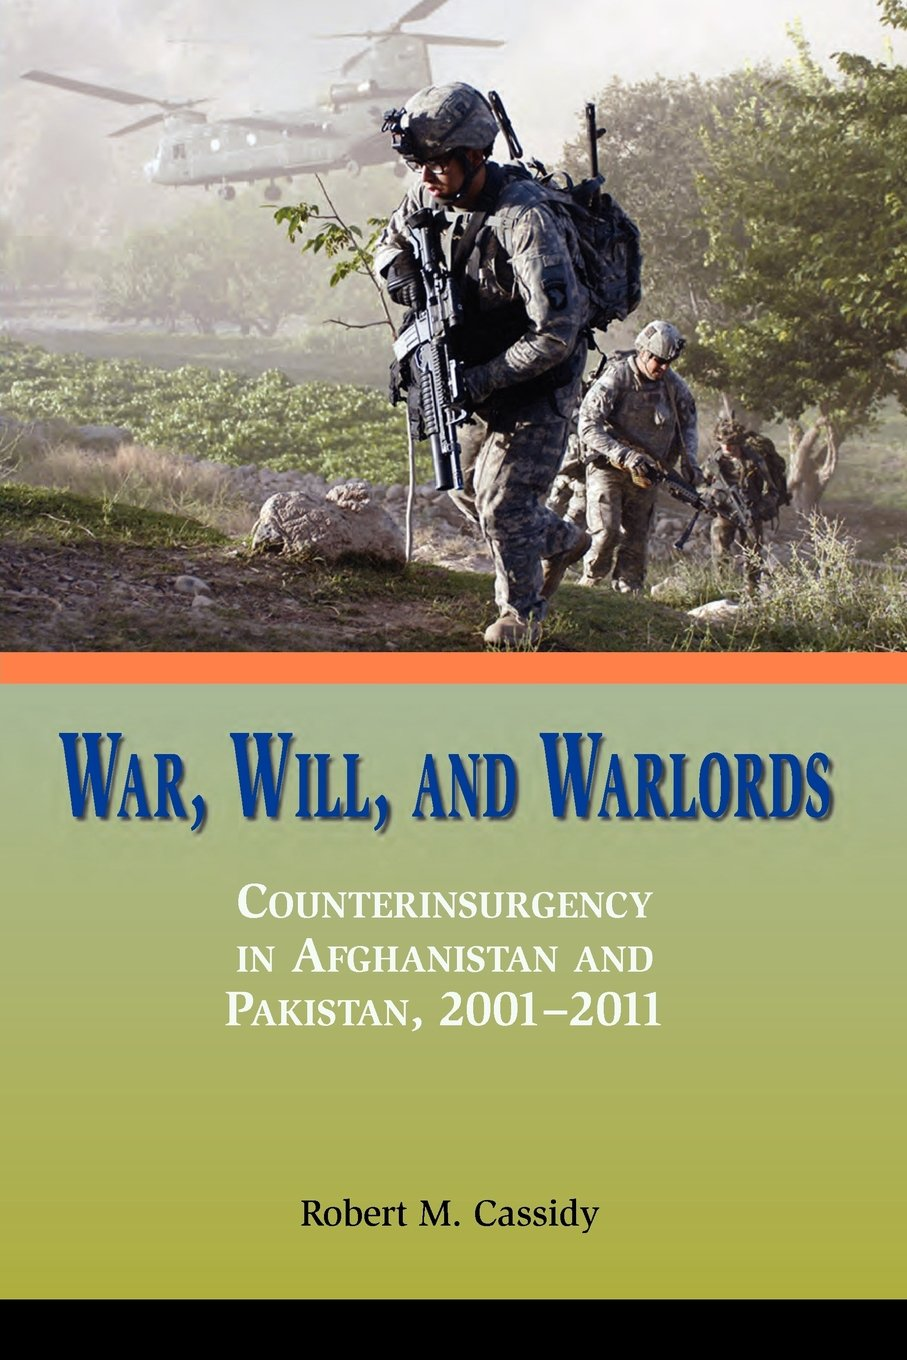 War, Will, and Warlords: Counterinsurgency in Afghanistan and Pakistan, 2001-2011